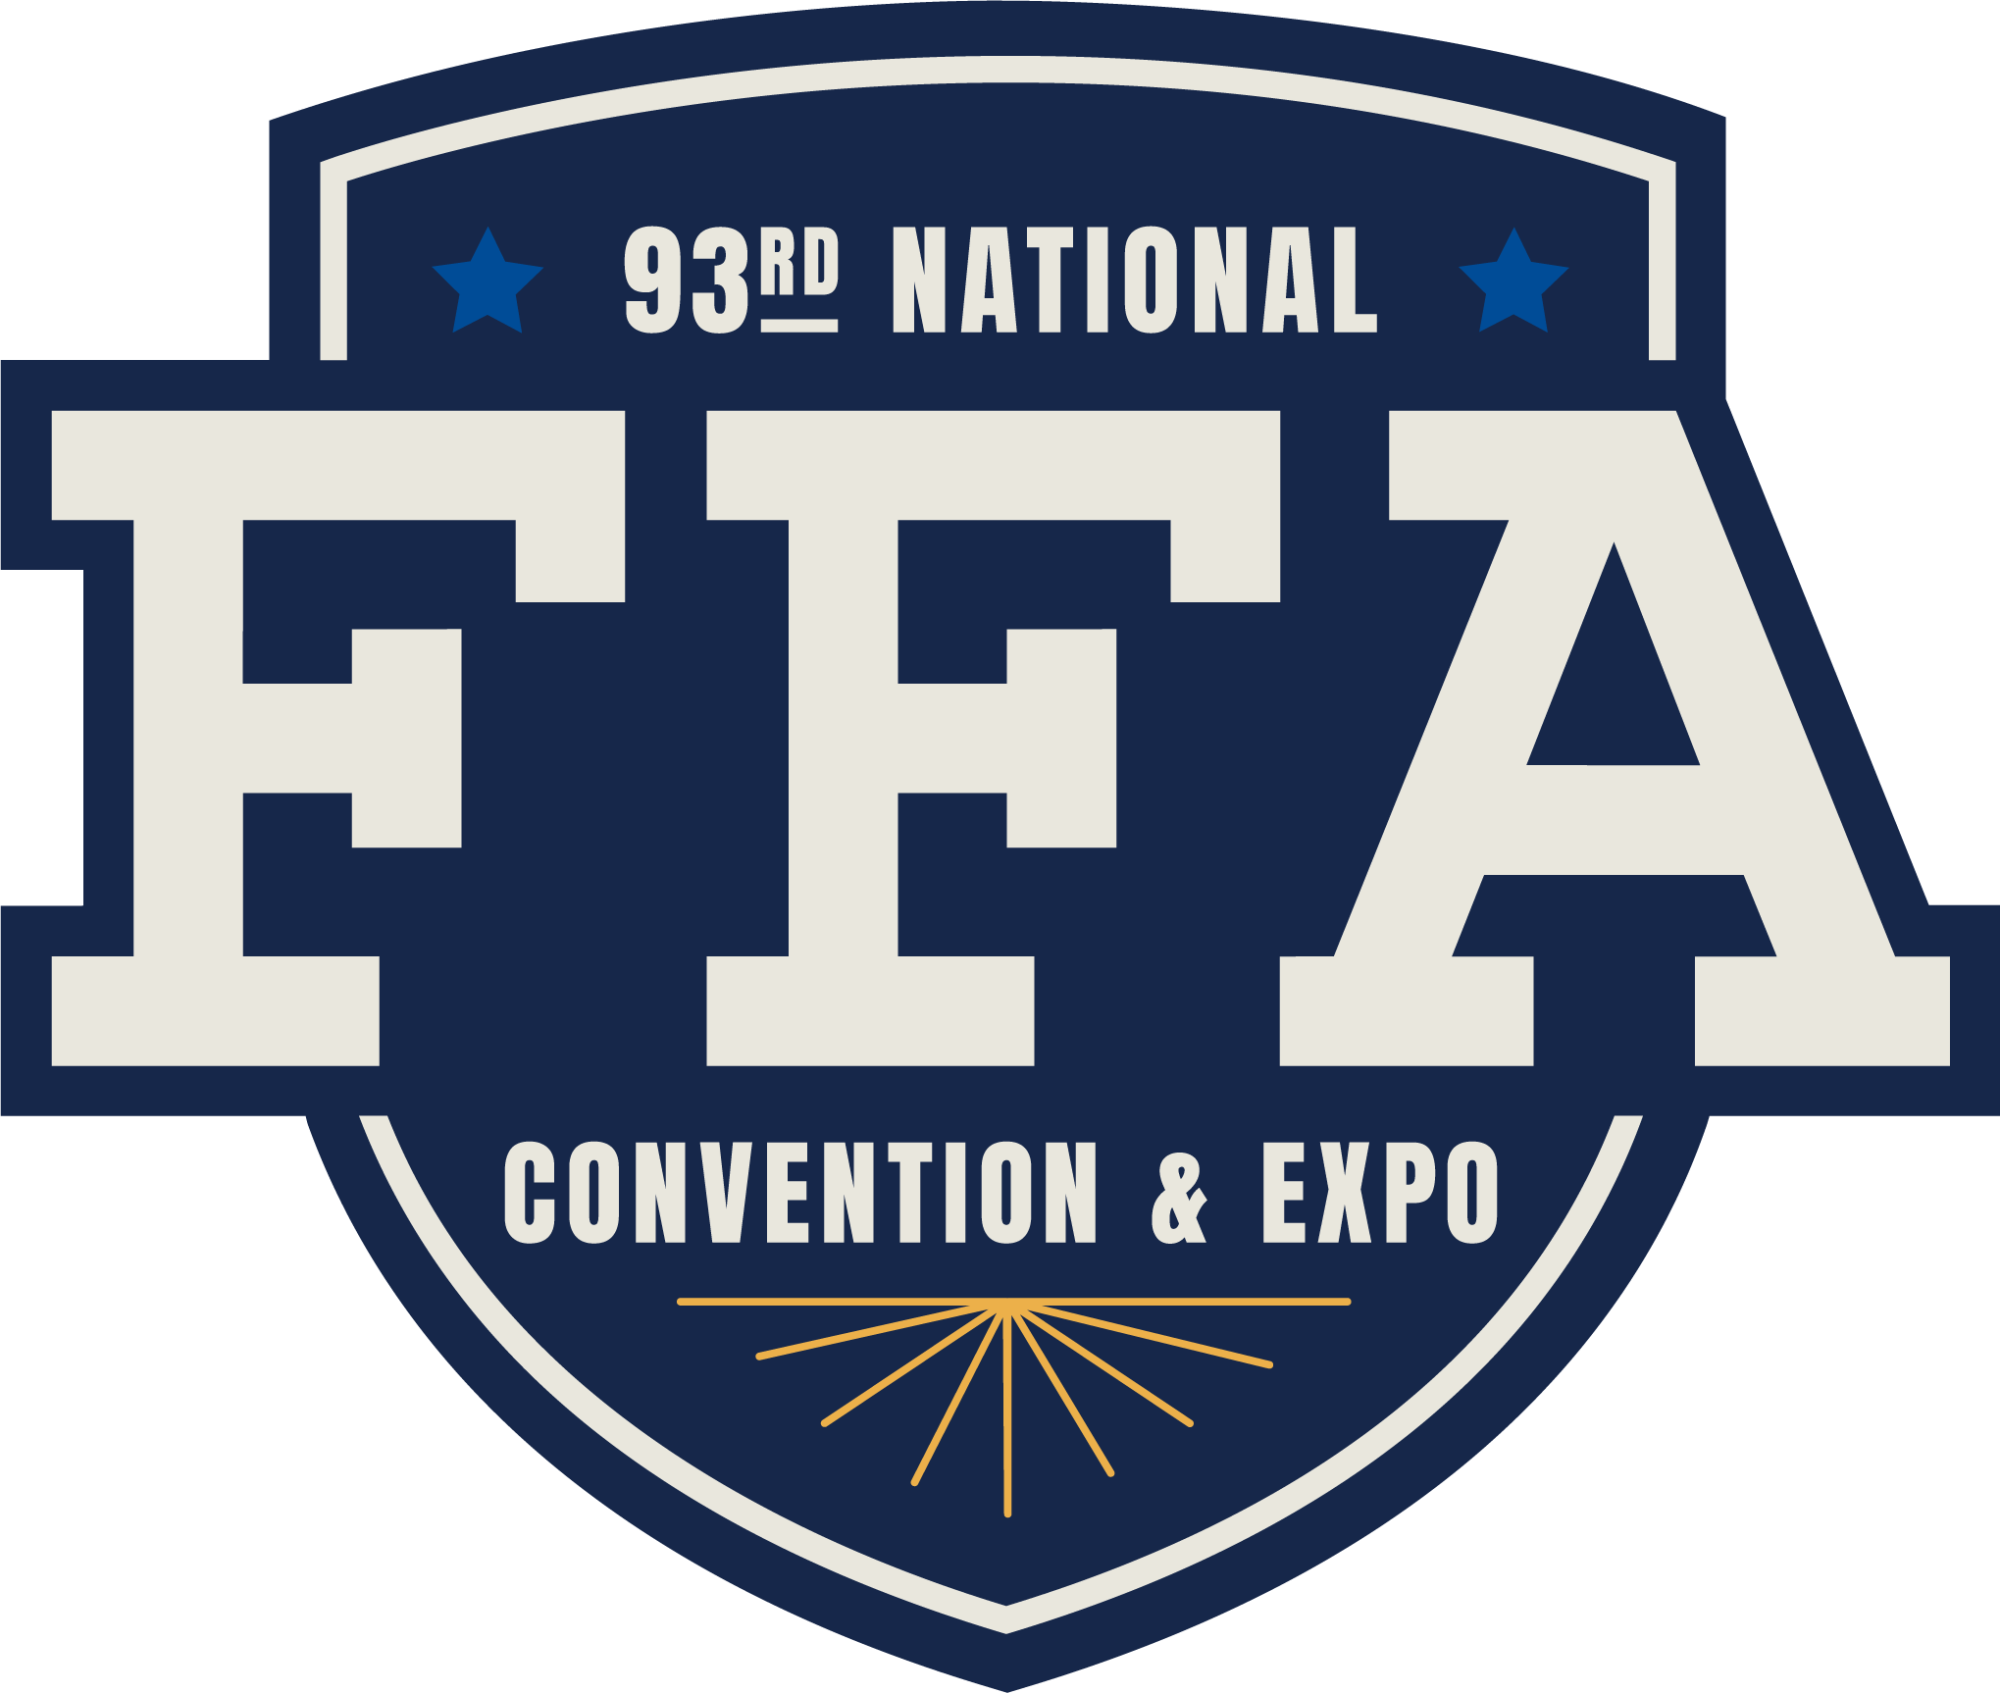 93rd National FFA Convention & Expo Logo